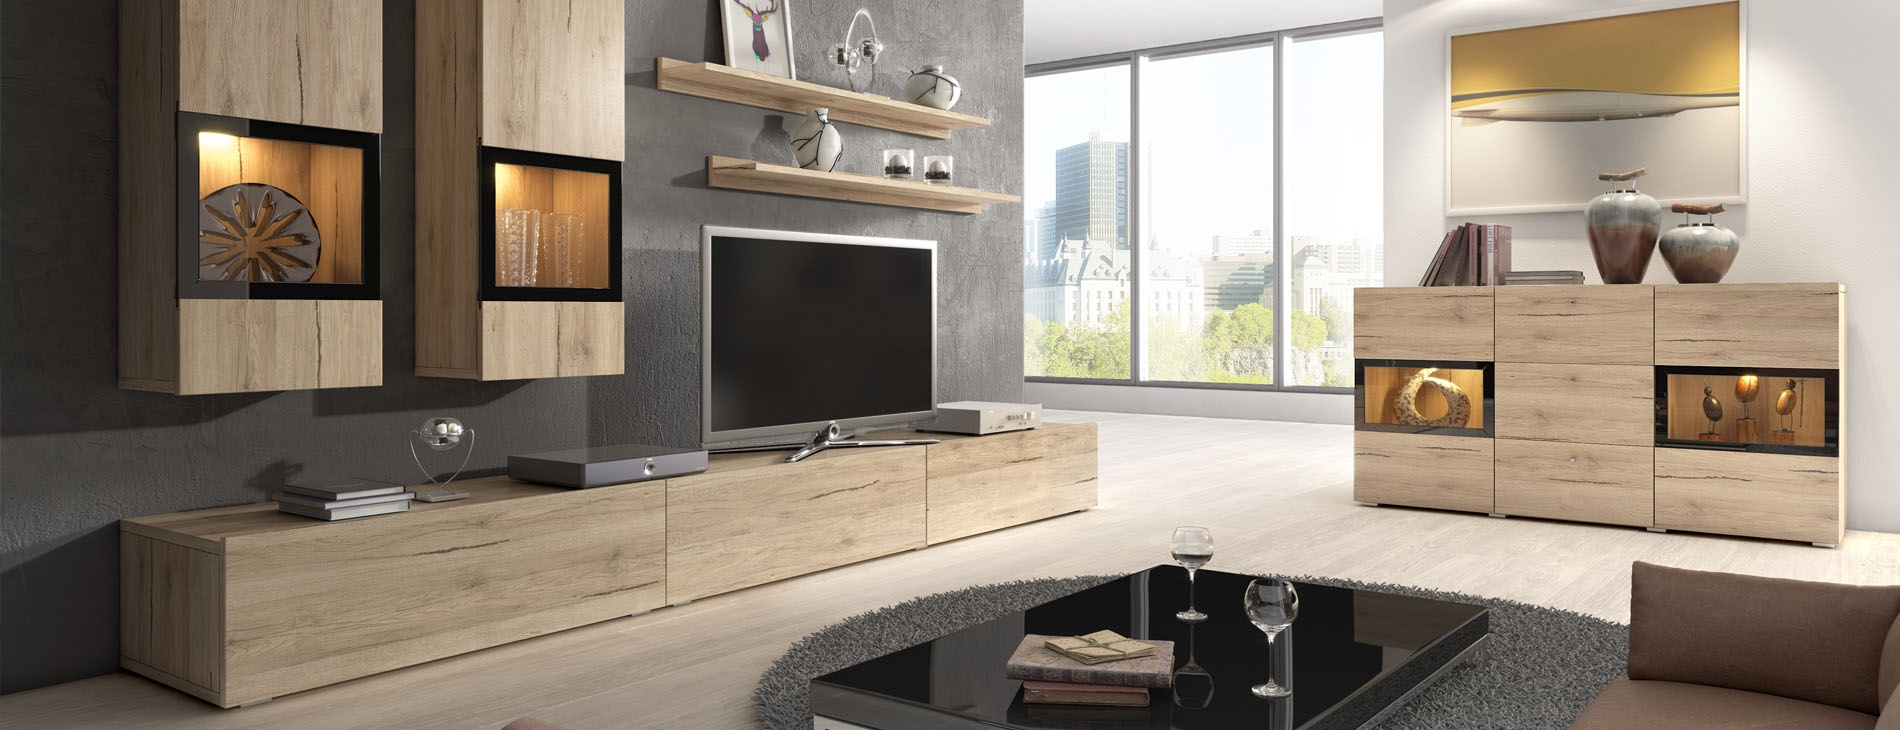 https://domadeco.com/furniture/entertainment-centers/wall-unit-baros.html